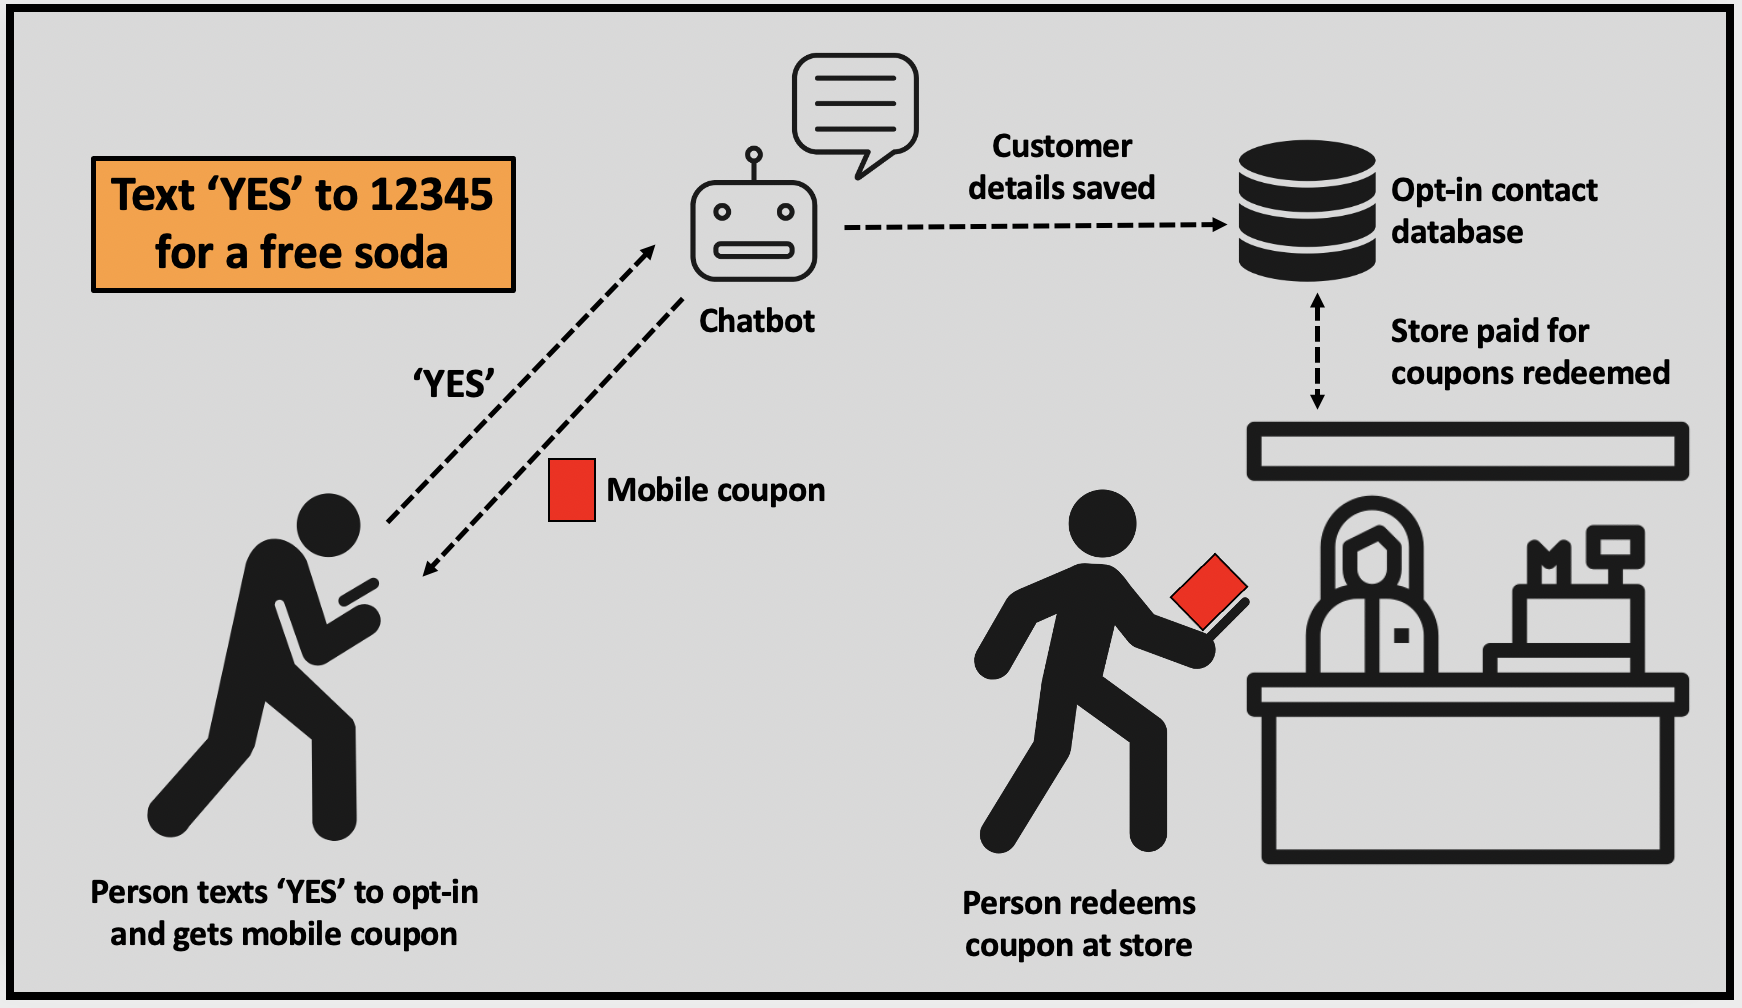 Mobile coupons help businesses collect opt-in customer details